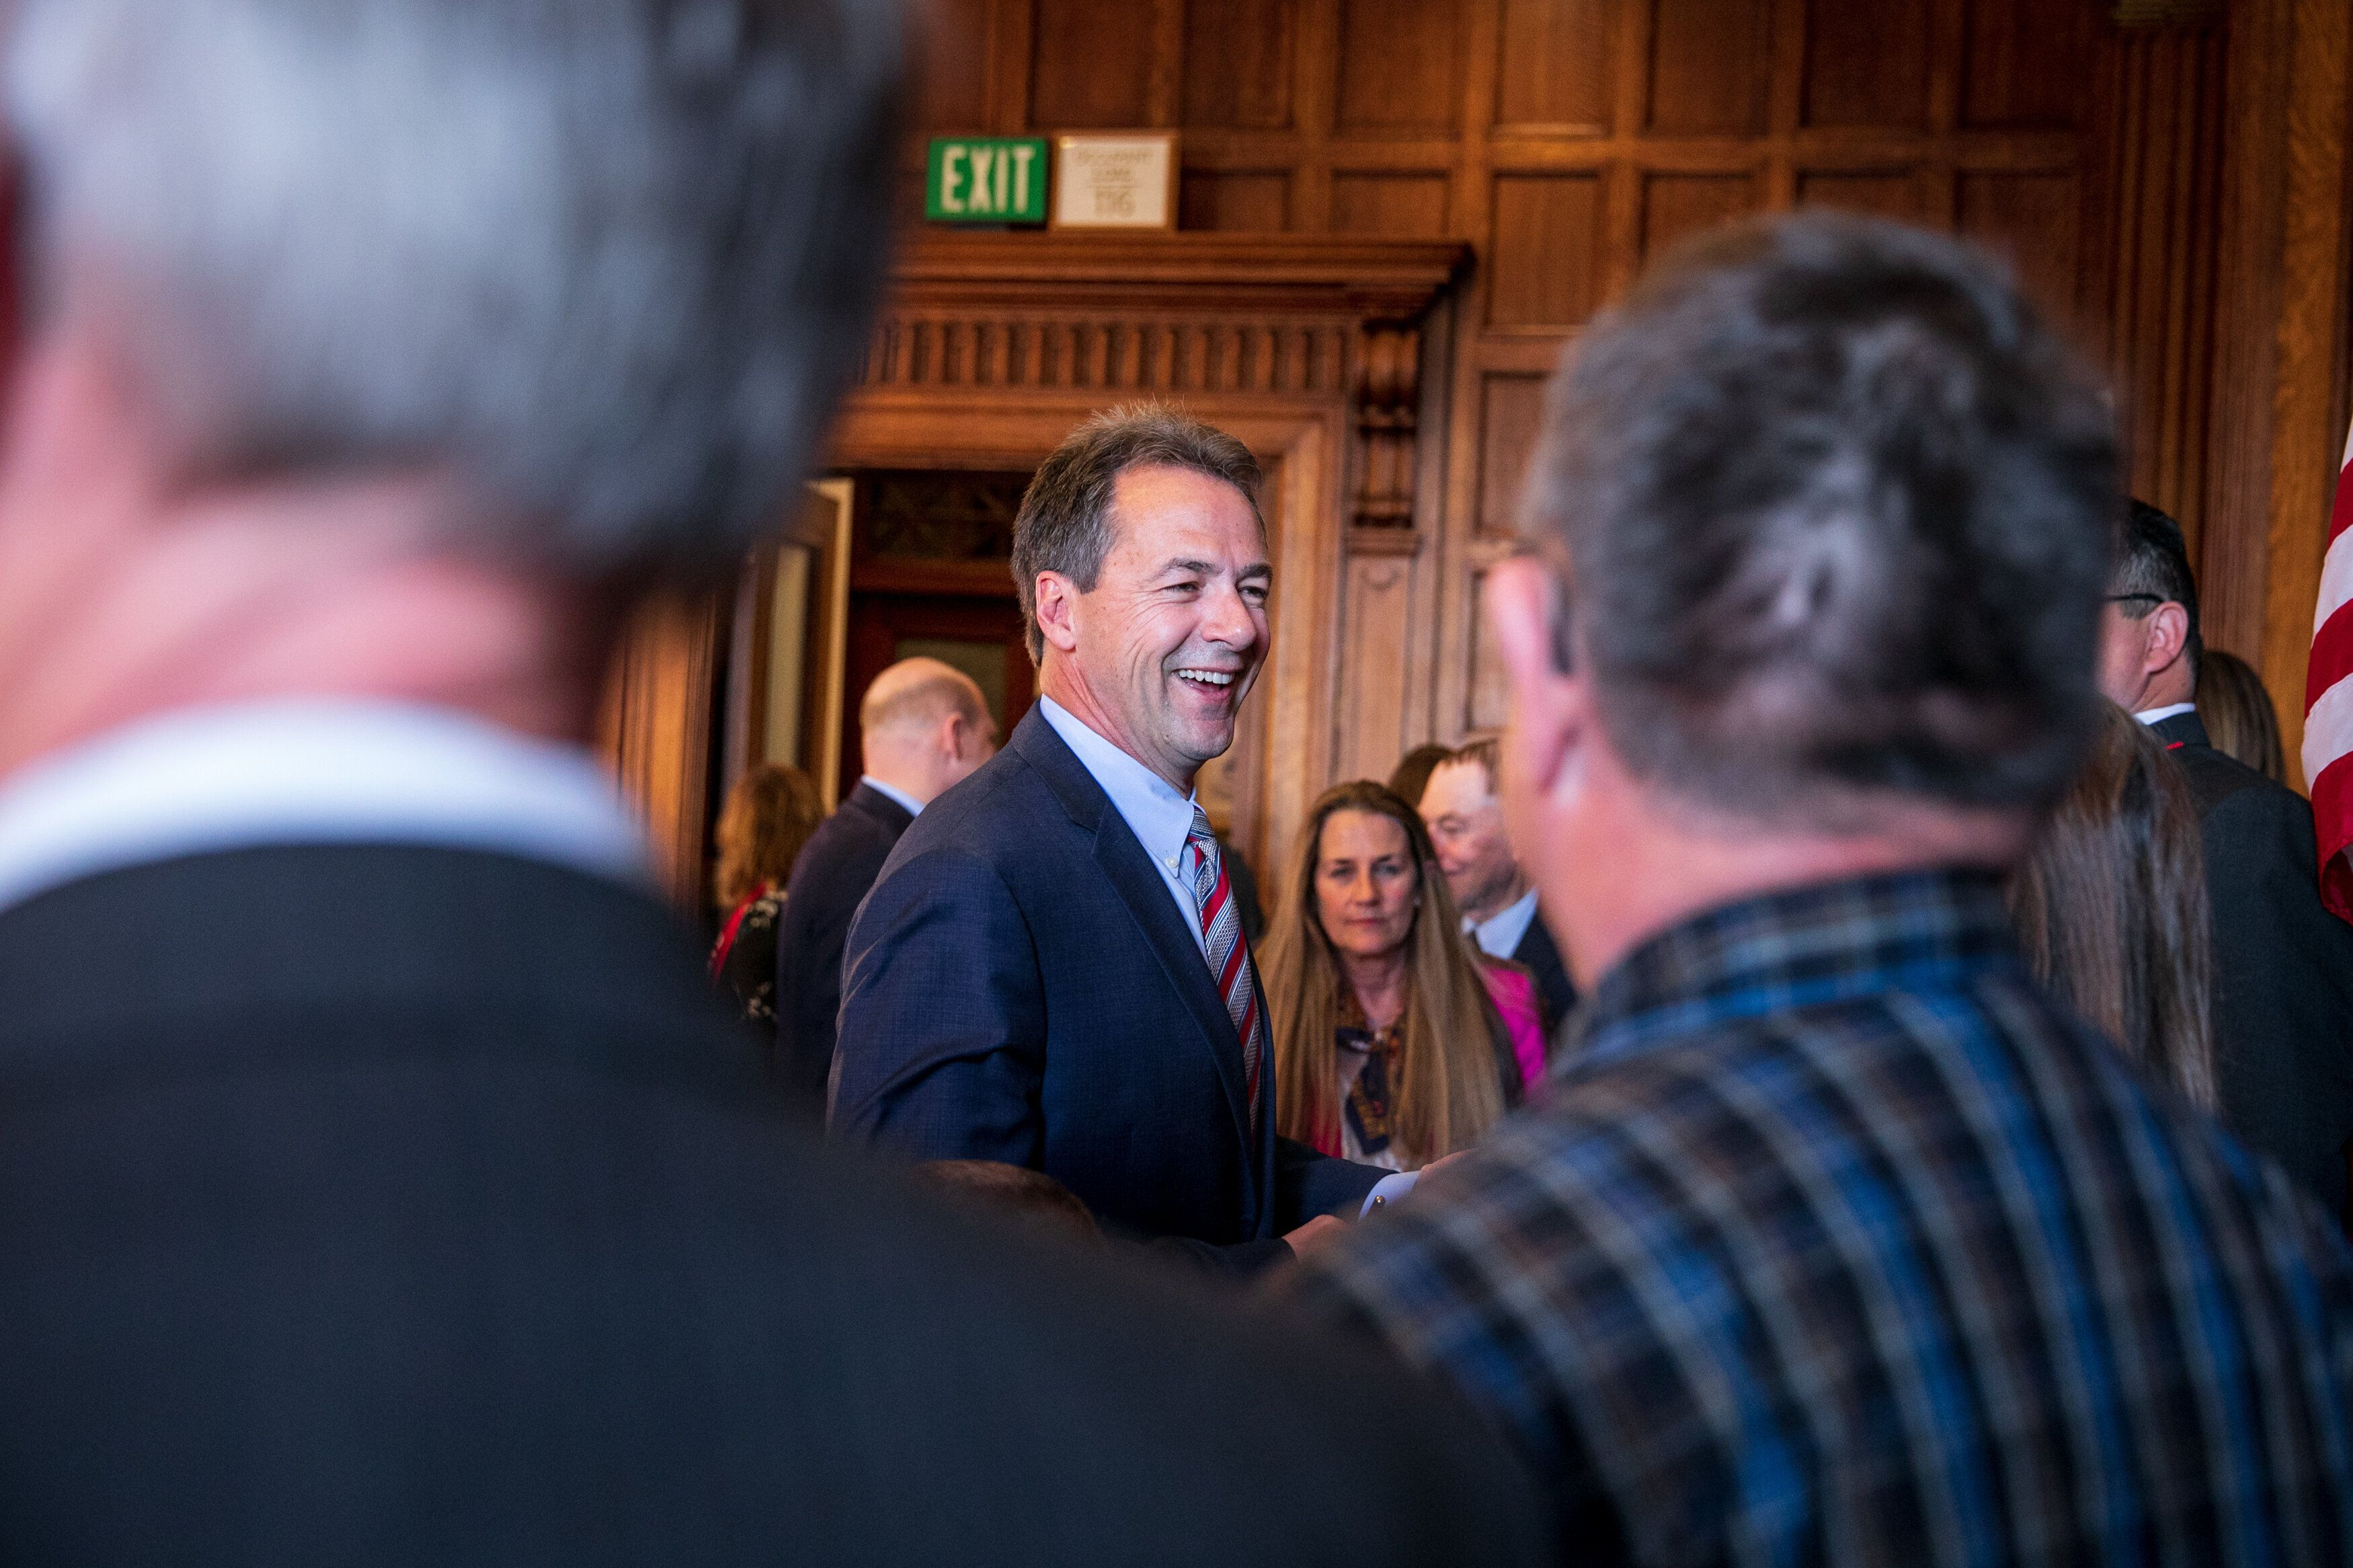 HELENA, MONTANA - May 9, 2019: Gov. Steve Bullock after signing several bills into law, including one for Medicaid expansion in his state. Ilana Panich-Linsman for HuffPost